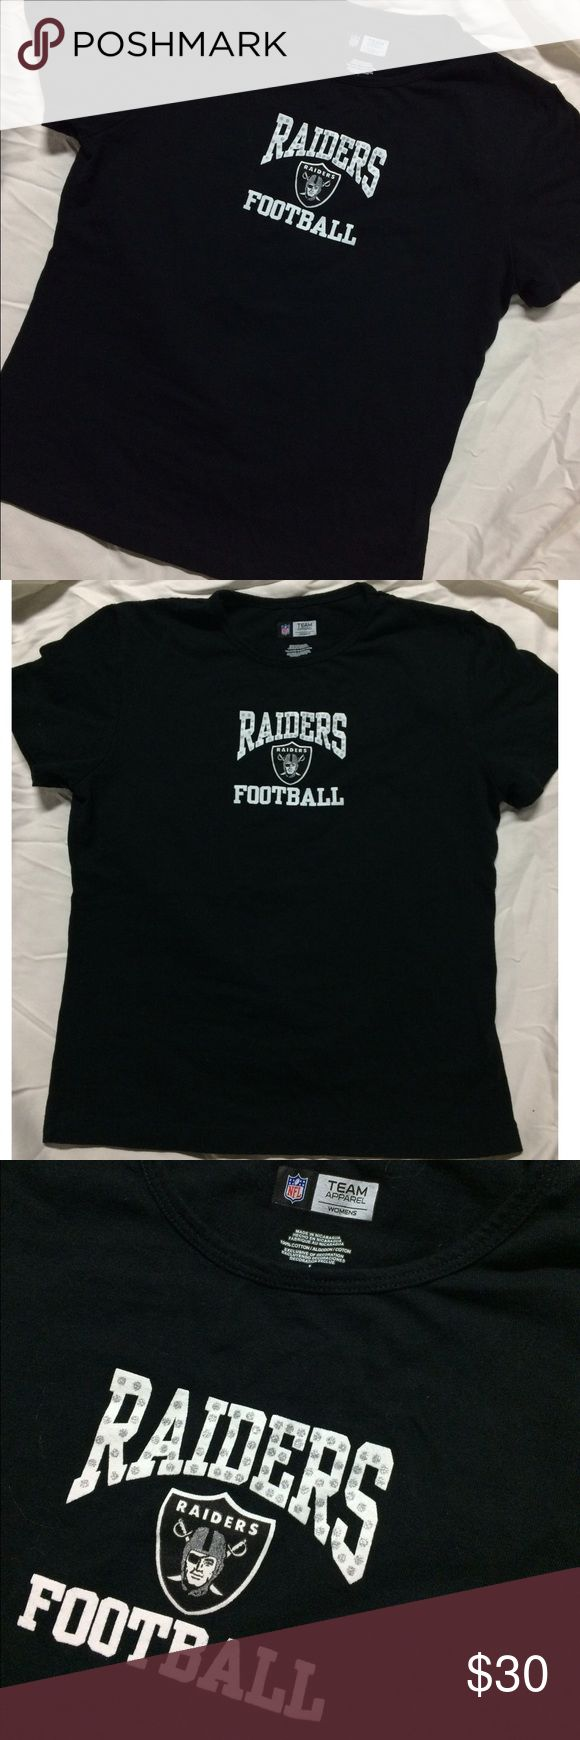 Raiders Football Women's Sports Apparel Size large, fits medium as well. Authentic NFL brand. Raiders football team. Black with sparkly bedazzled glitter logo. FREE SURPRISE GIFT WITH EVERY ORDER! NFL Tops Tees - Short Sleeve